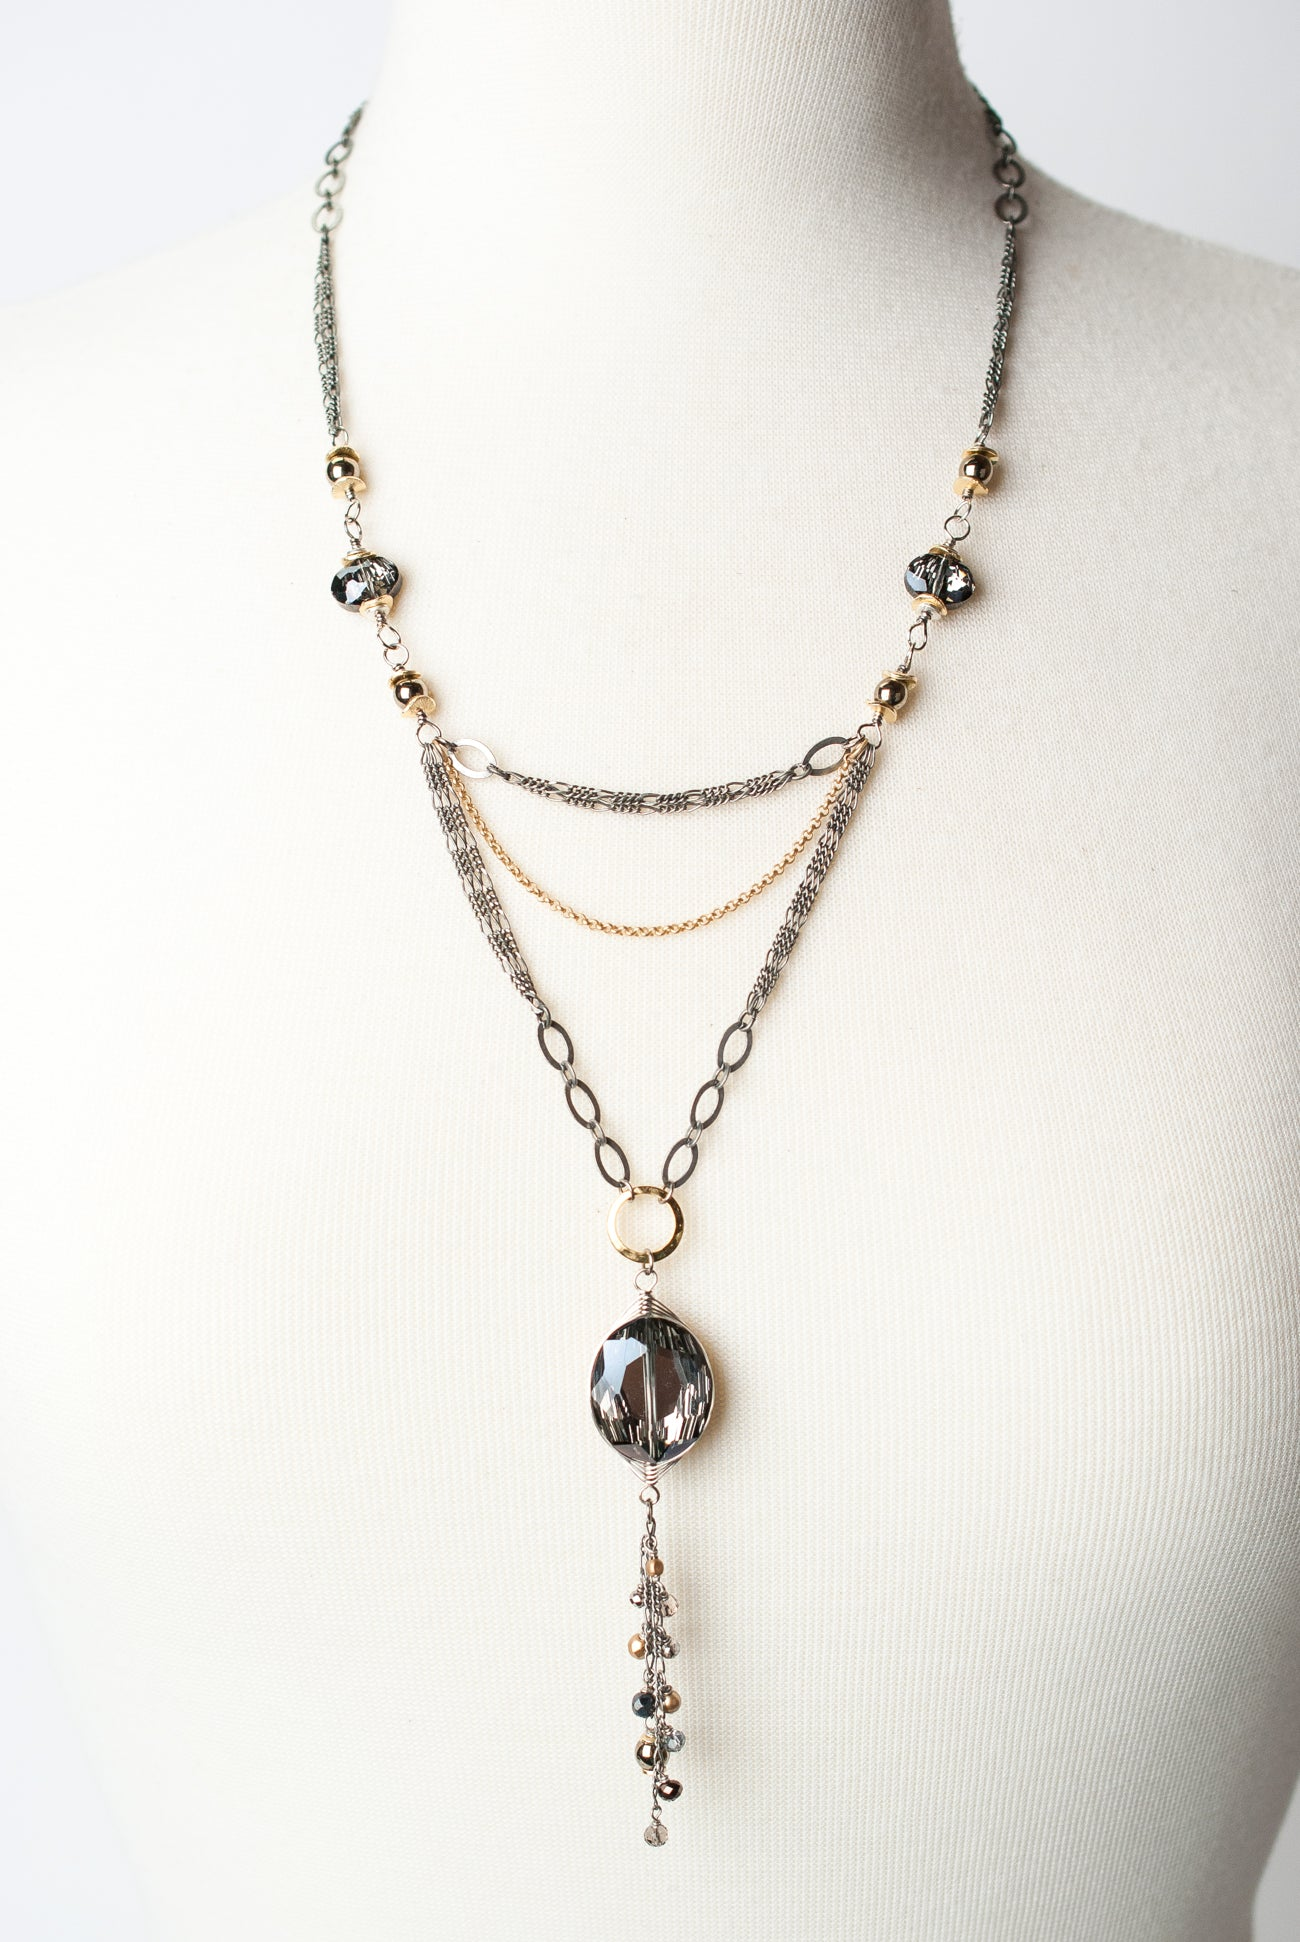 "Silver & Gold 21.5-23.5"" Layered Necklace"